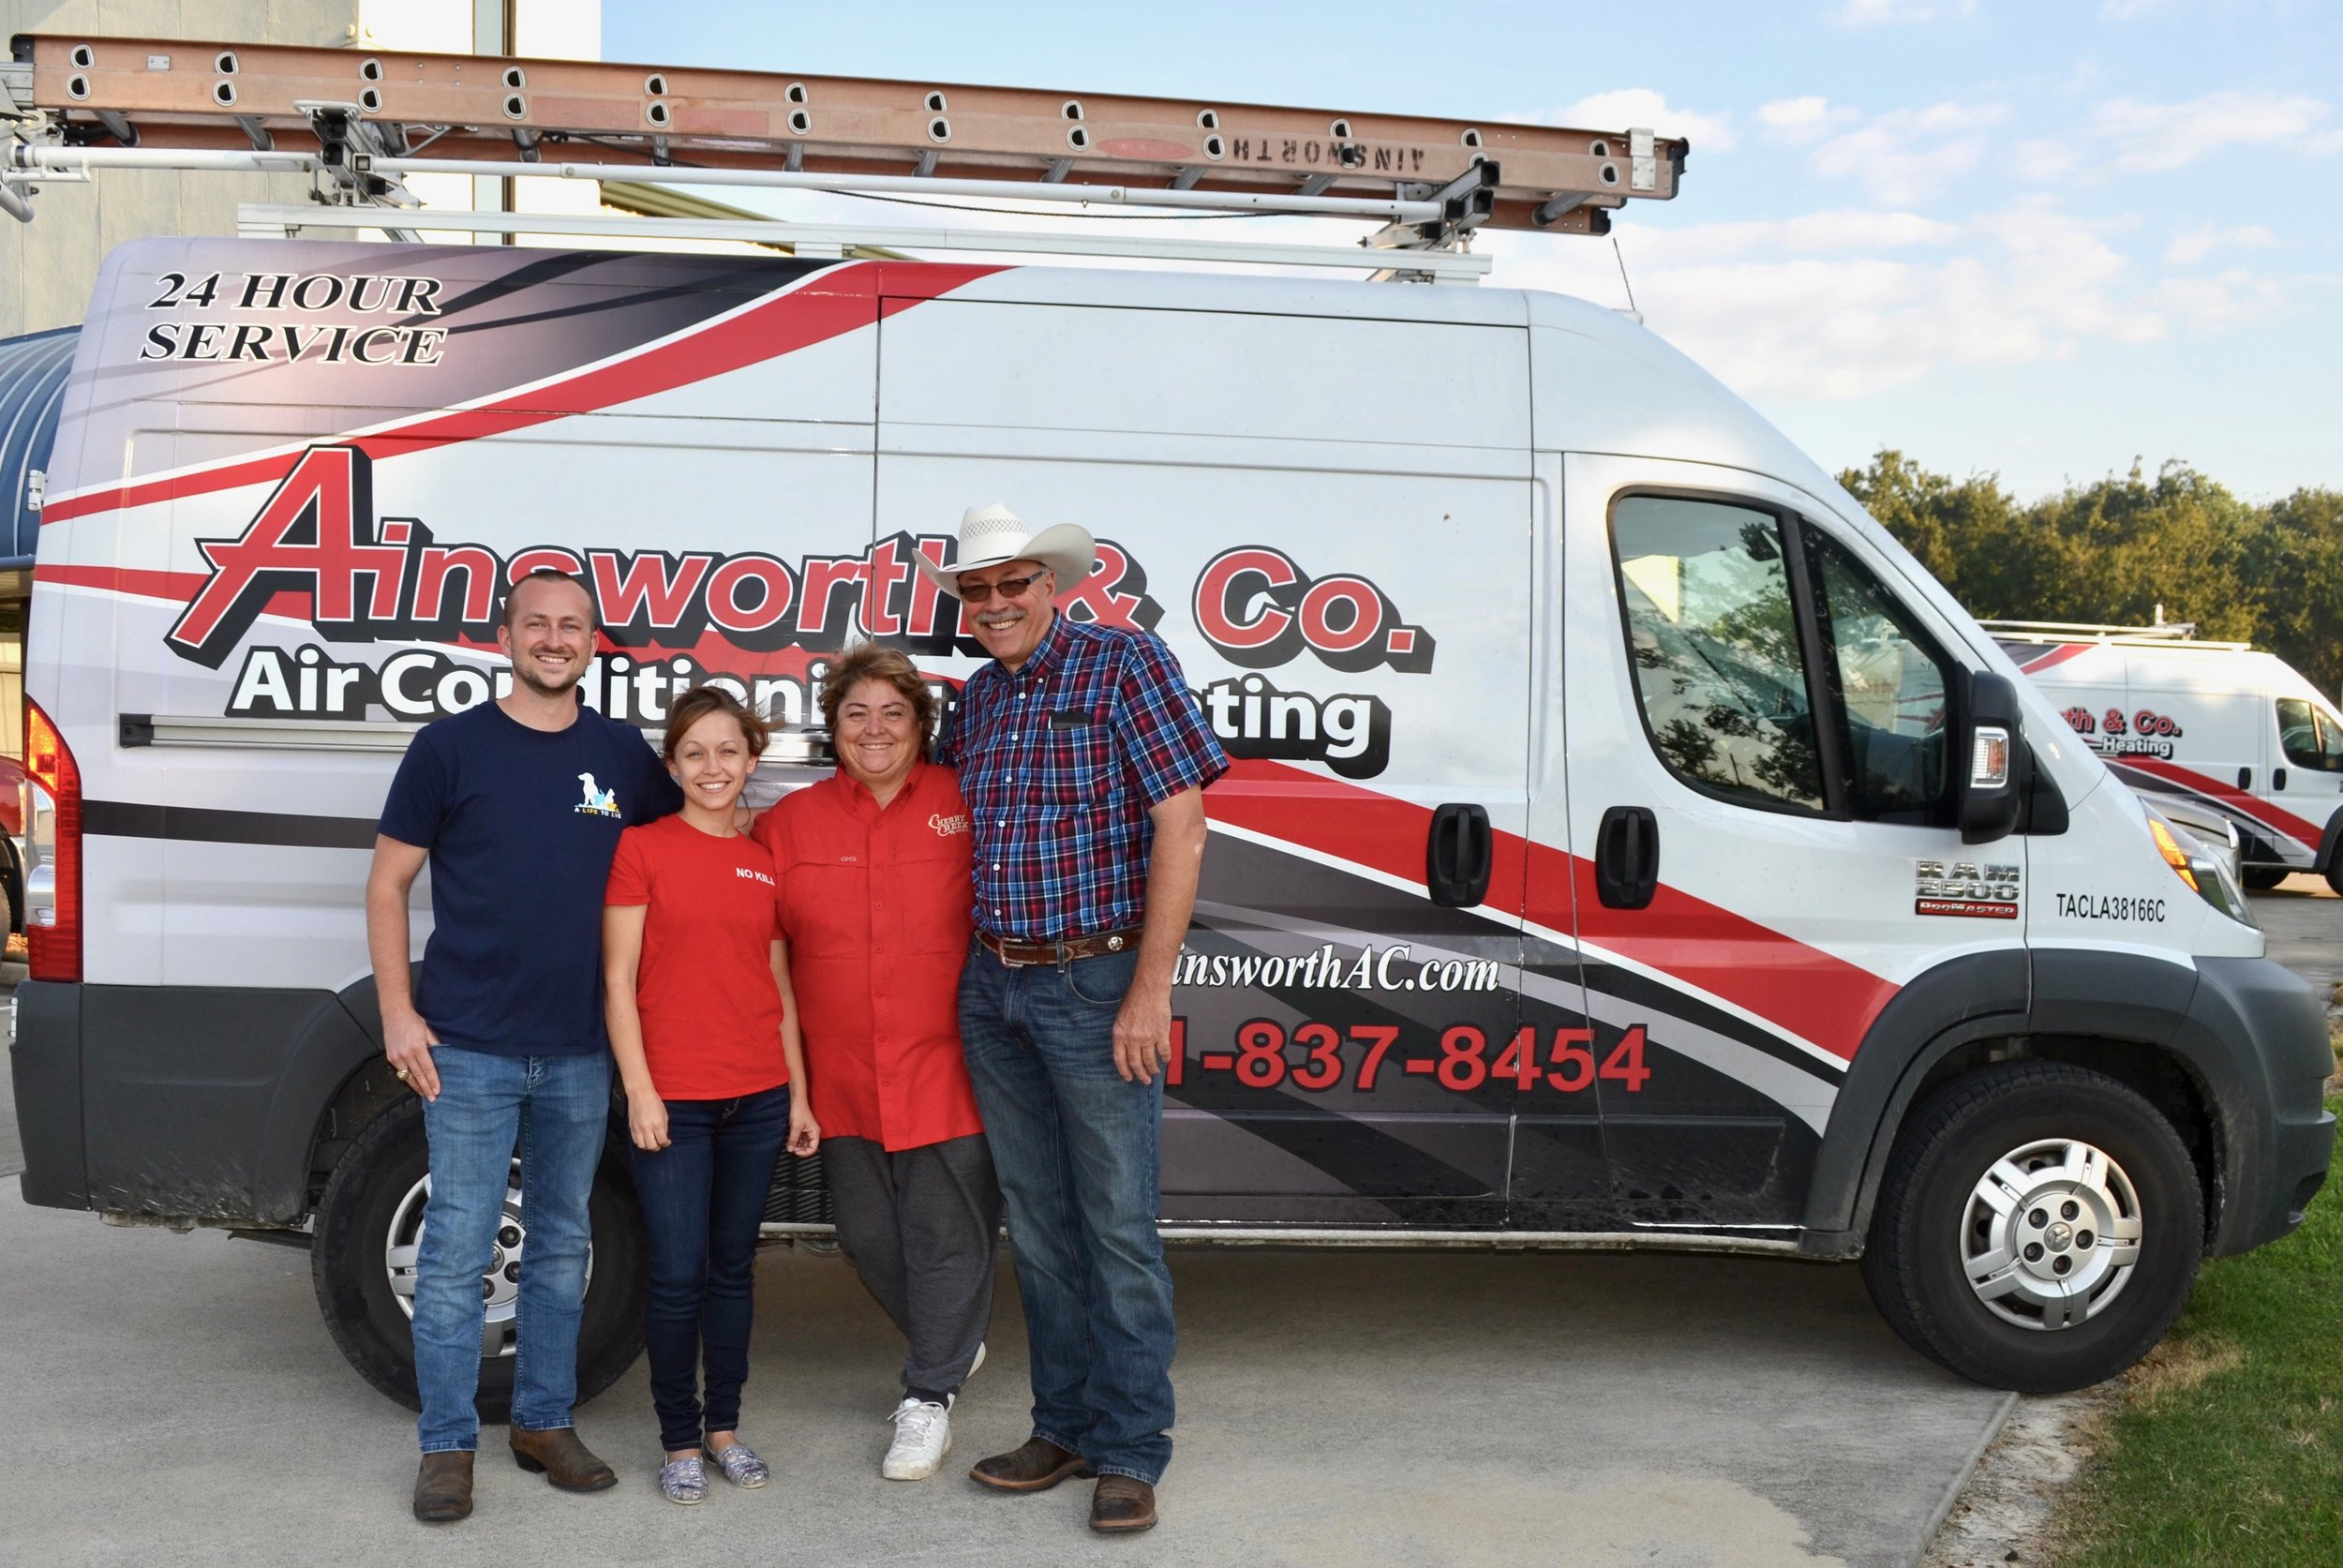 Robin and Junior Forrest (right), owners of Ainsworth and Company Air Conditioning and Heating, recently donated a refrigerator to A Life to Live for storing important supplies. Joining the Forrests are Jay Garrett, founder and executive director, and Magan Gonzales, co-founder and program director, of A Life to Live. Learn more about the organization at www.adopttosave.org.